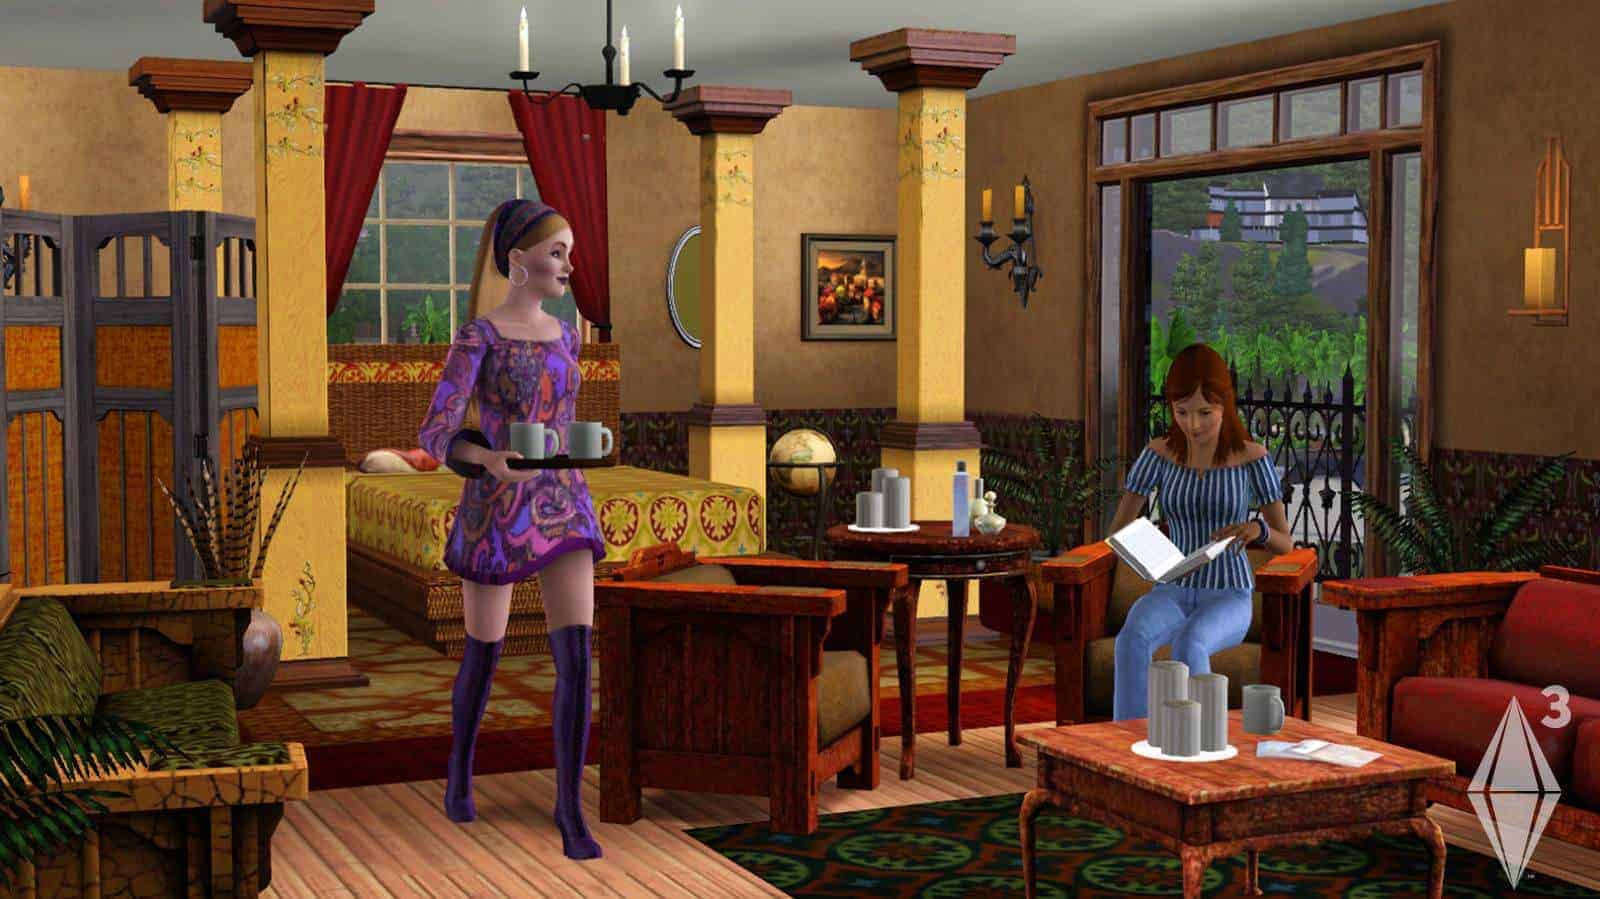 sims 3 game free download full version pc windows 7